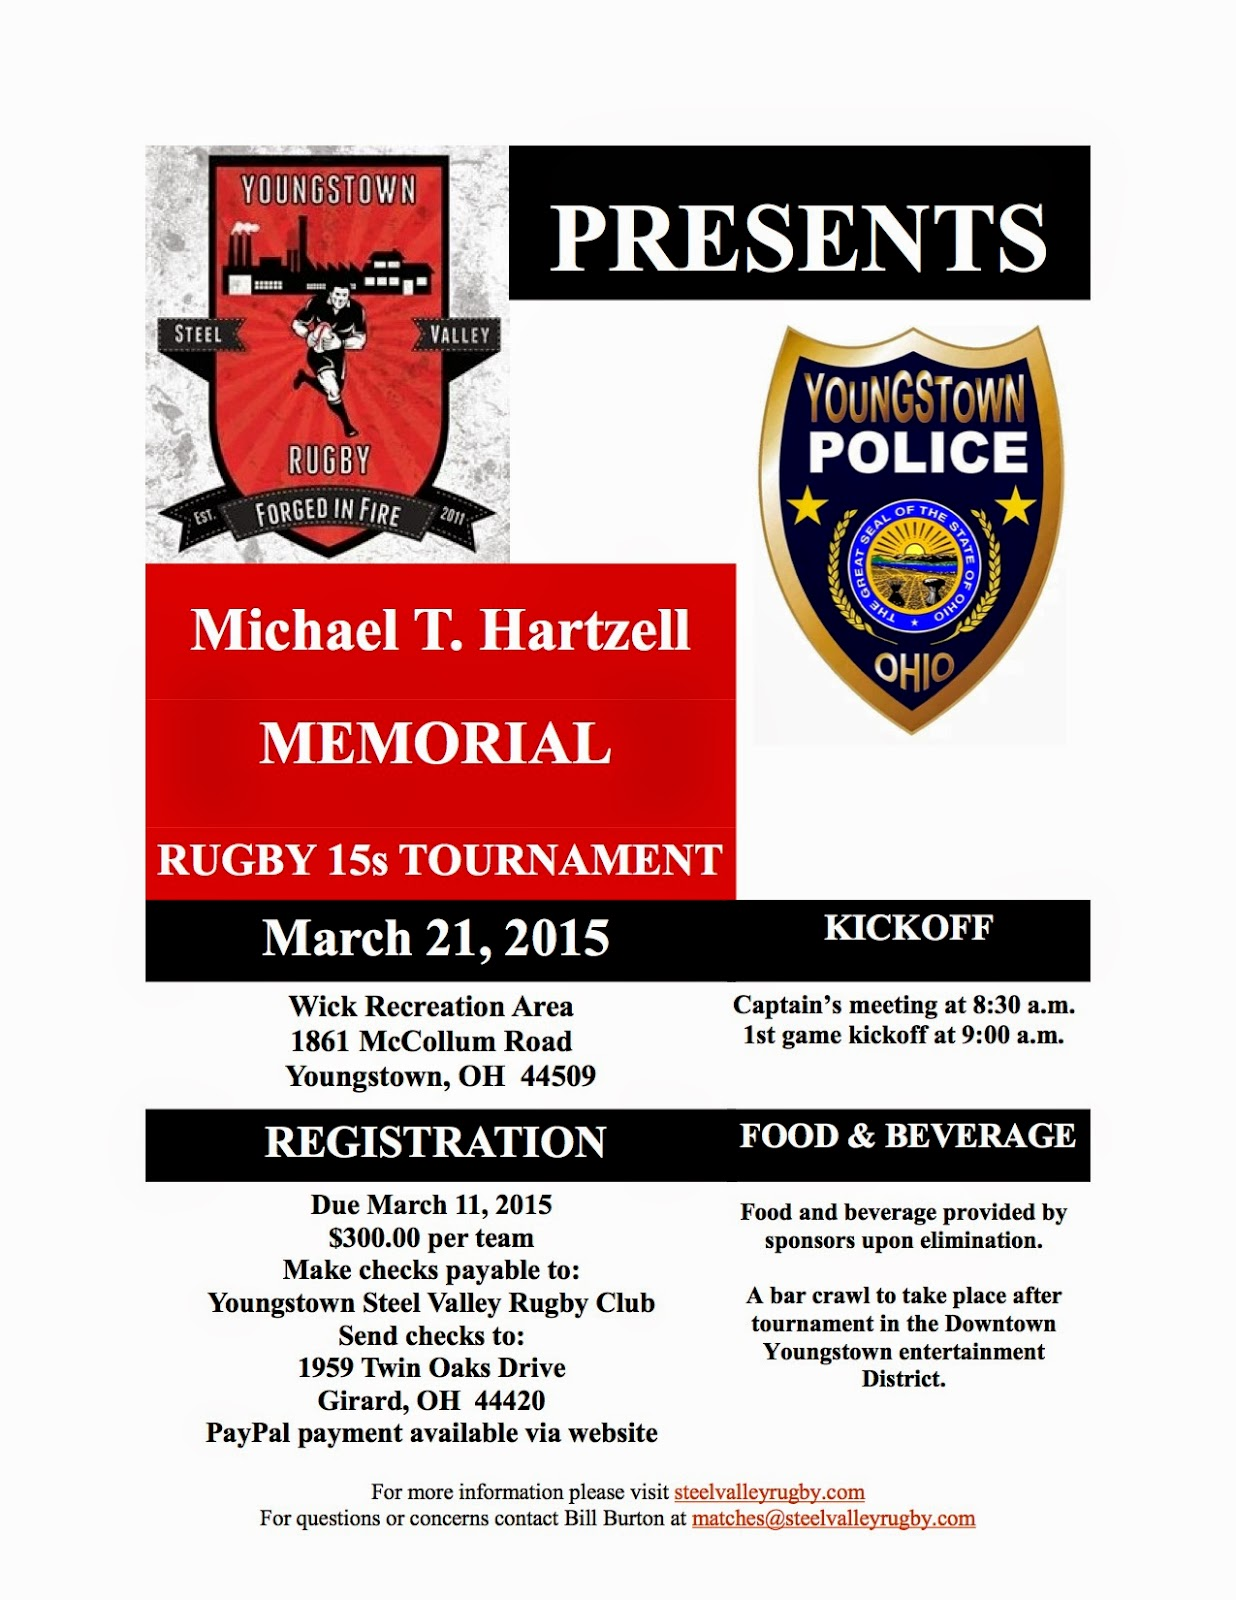 Advertisement for the Michael T. Hertzell Memorial Tournament